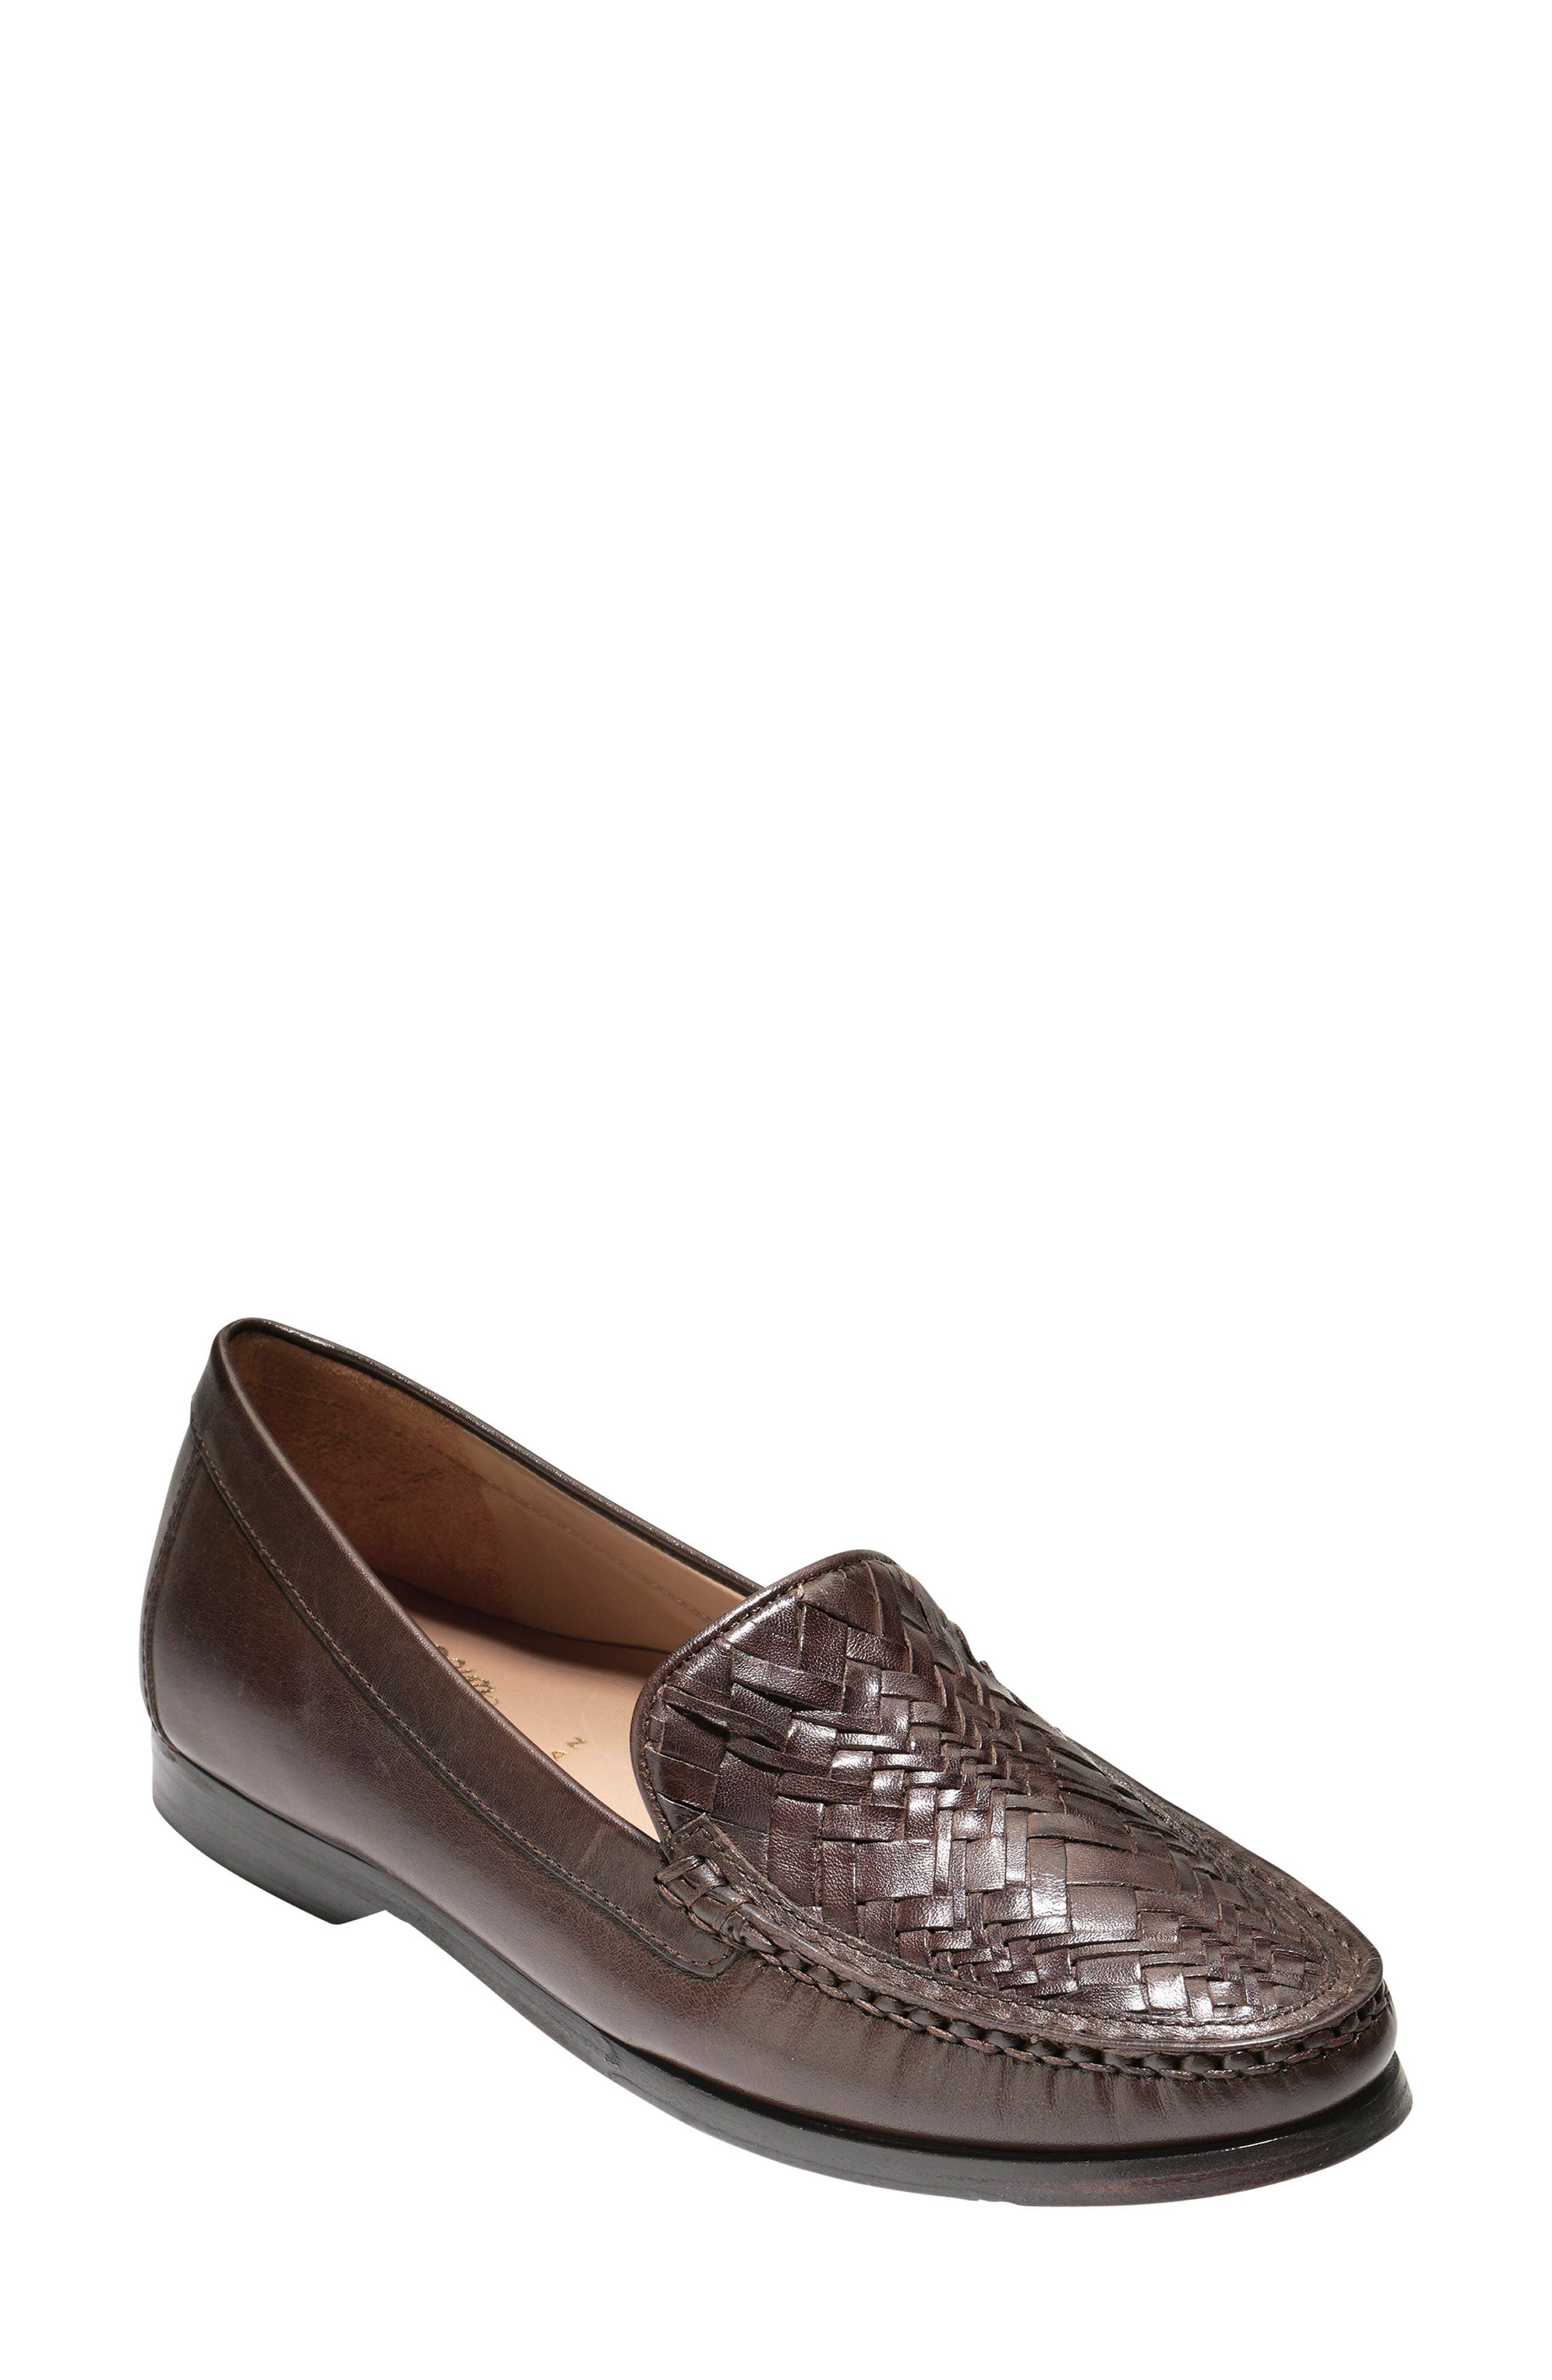 Pinch Genevieve Loafer,                             Main thumbnail 1, color,                             Chestnut Leather